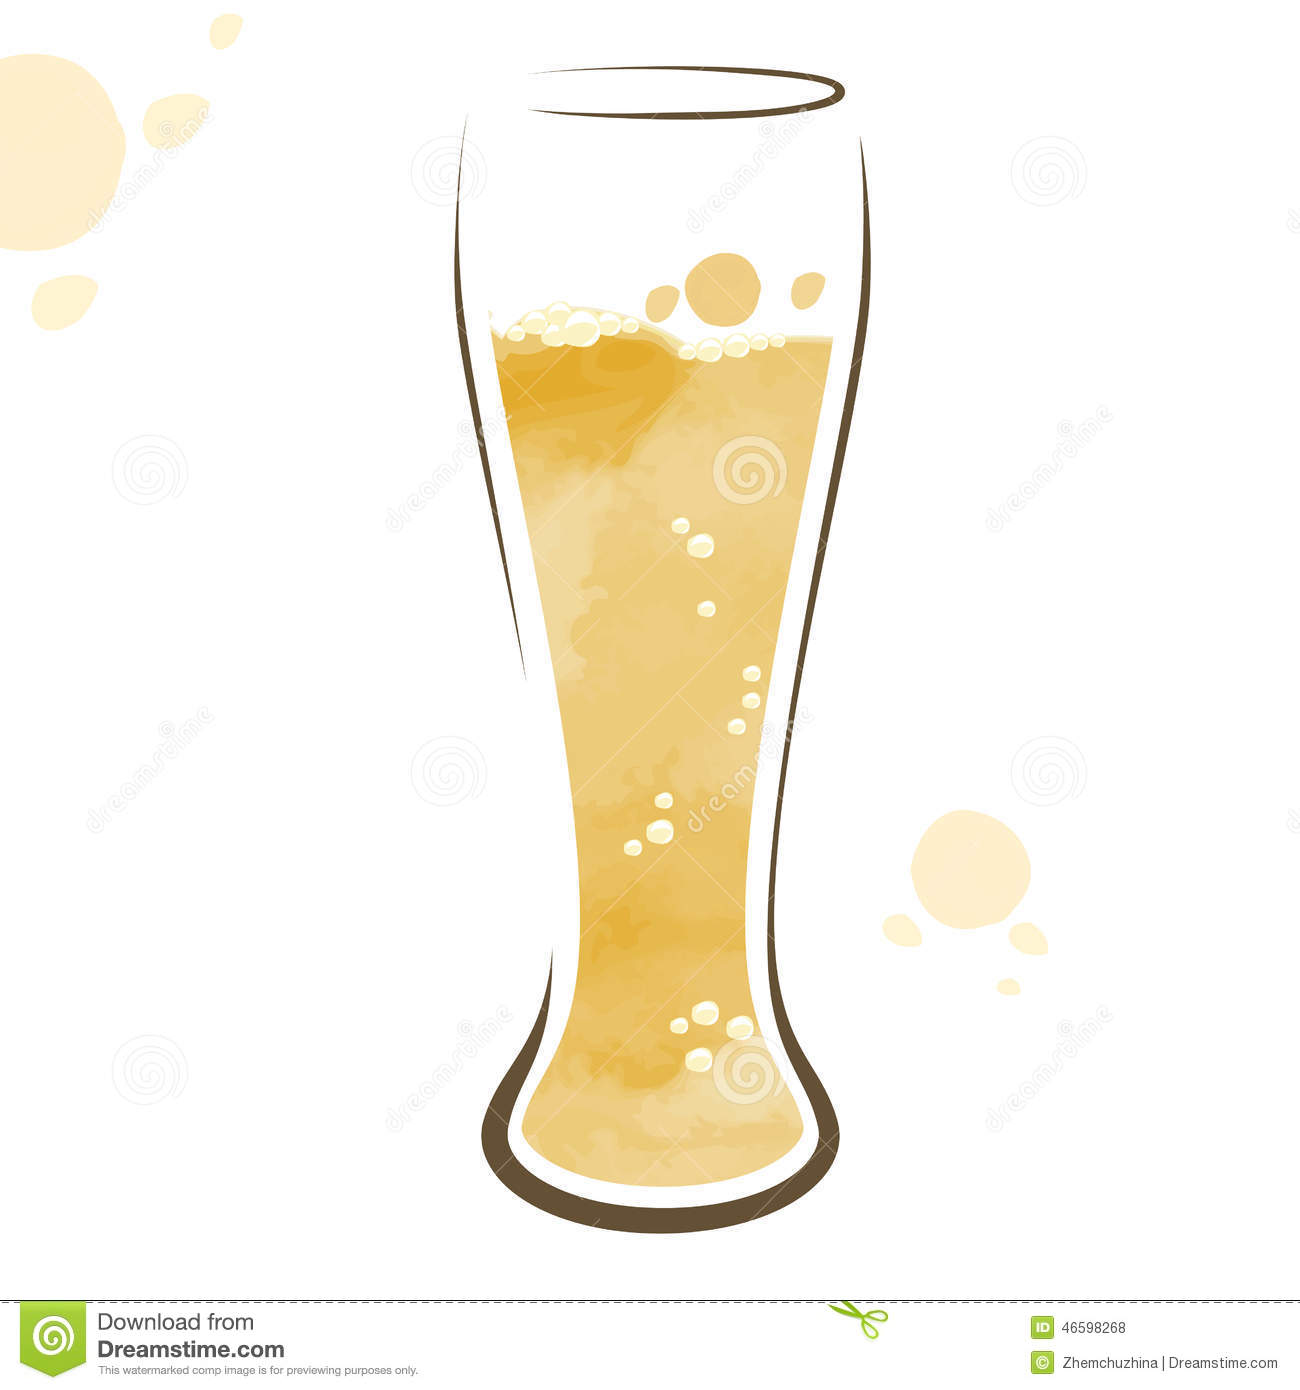 how to draw a beer glass